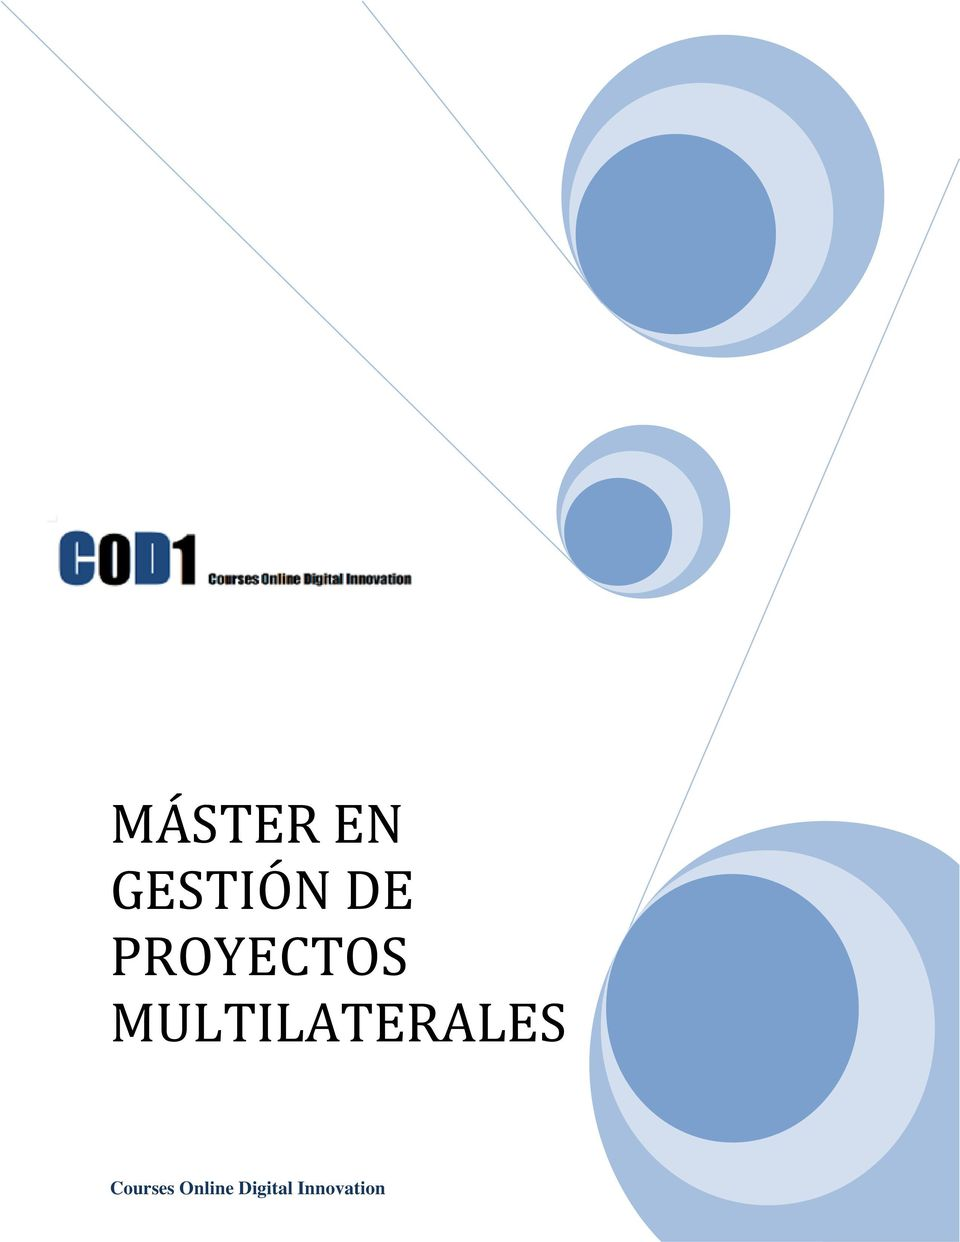 MULTILATERALES